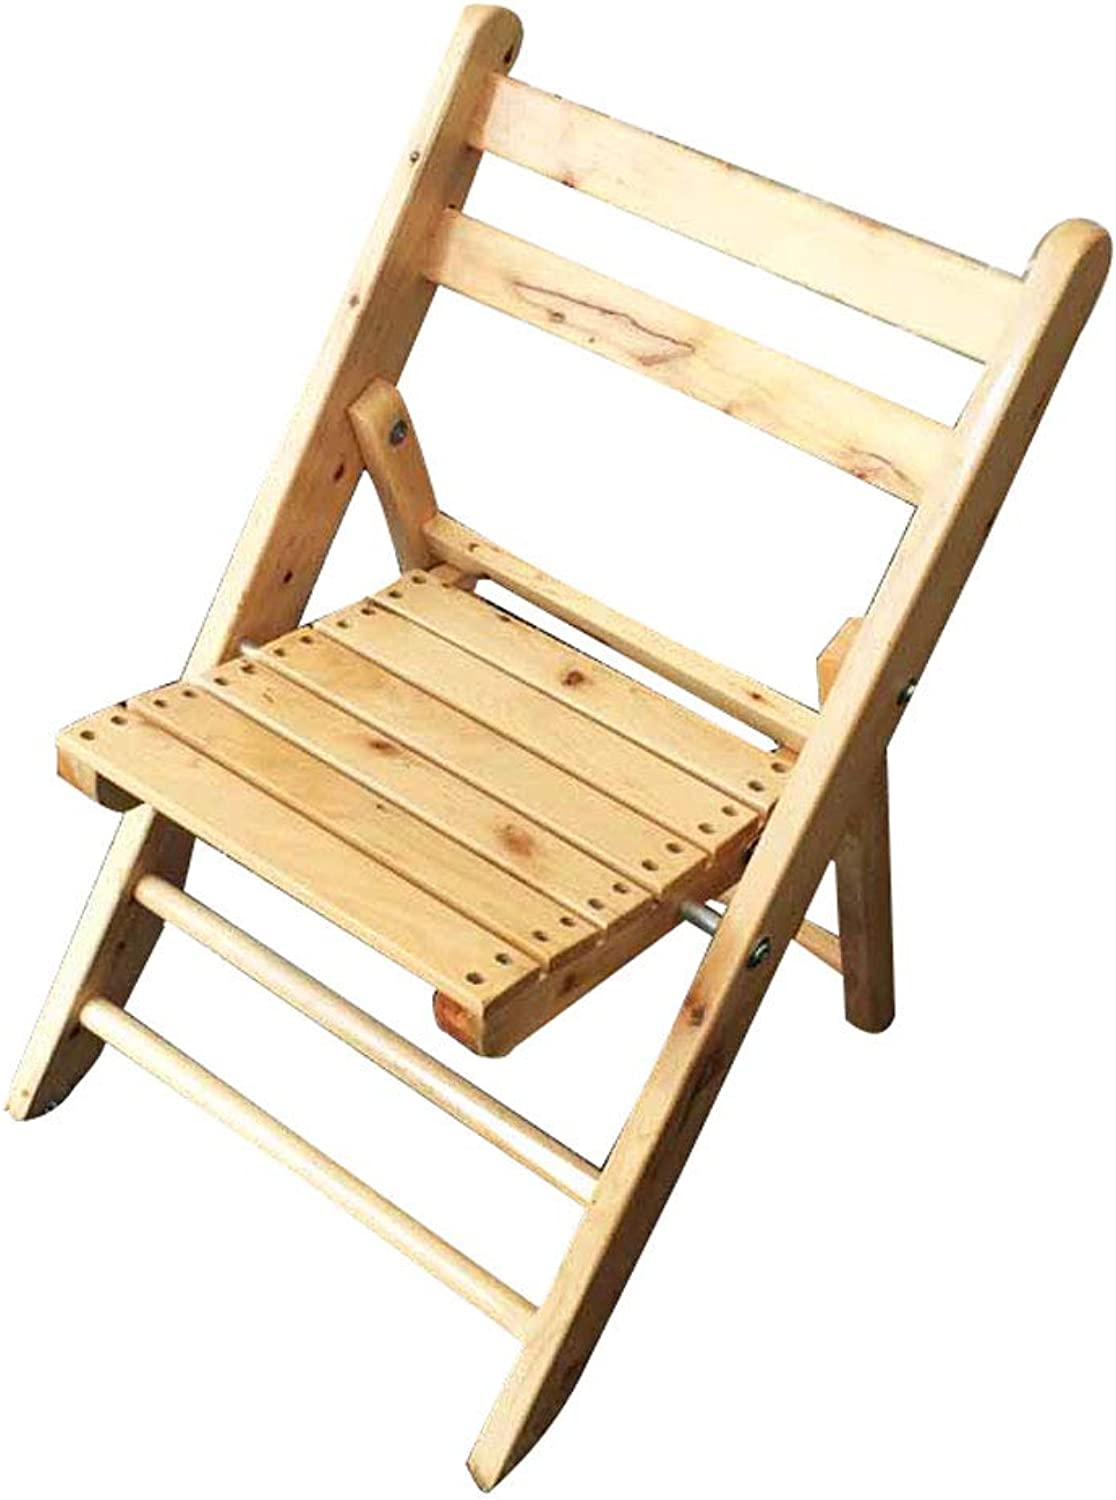 QRFDIANPatio Lounge Chair Folding Bamboo Lounge Chair Bamboo Rocking Chair Adult Household Lunch Break Cool Chair Old Man nap Sleepy Chair Balcony Solid Wood Chair Gravity Chair